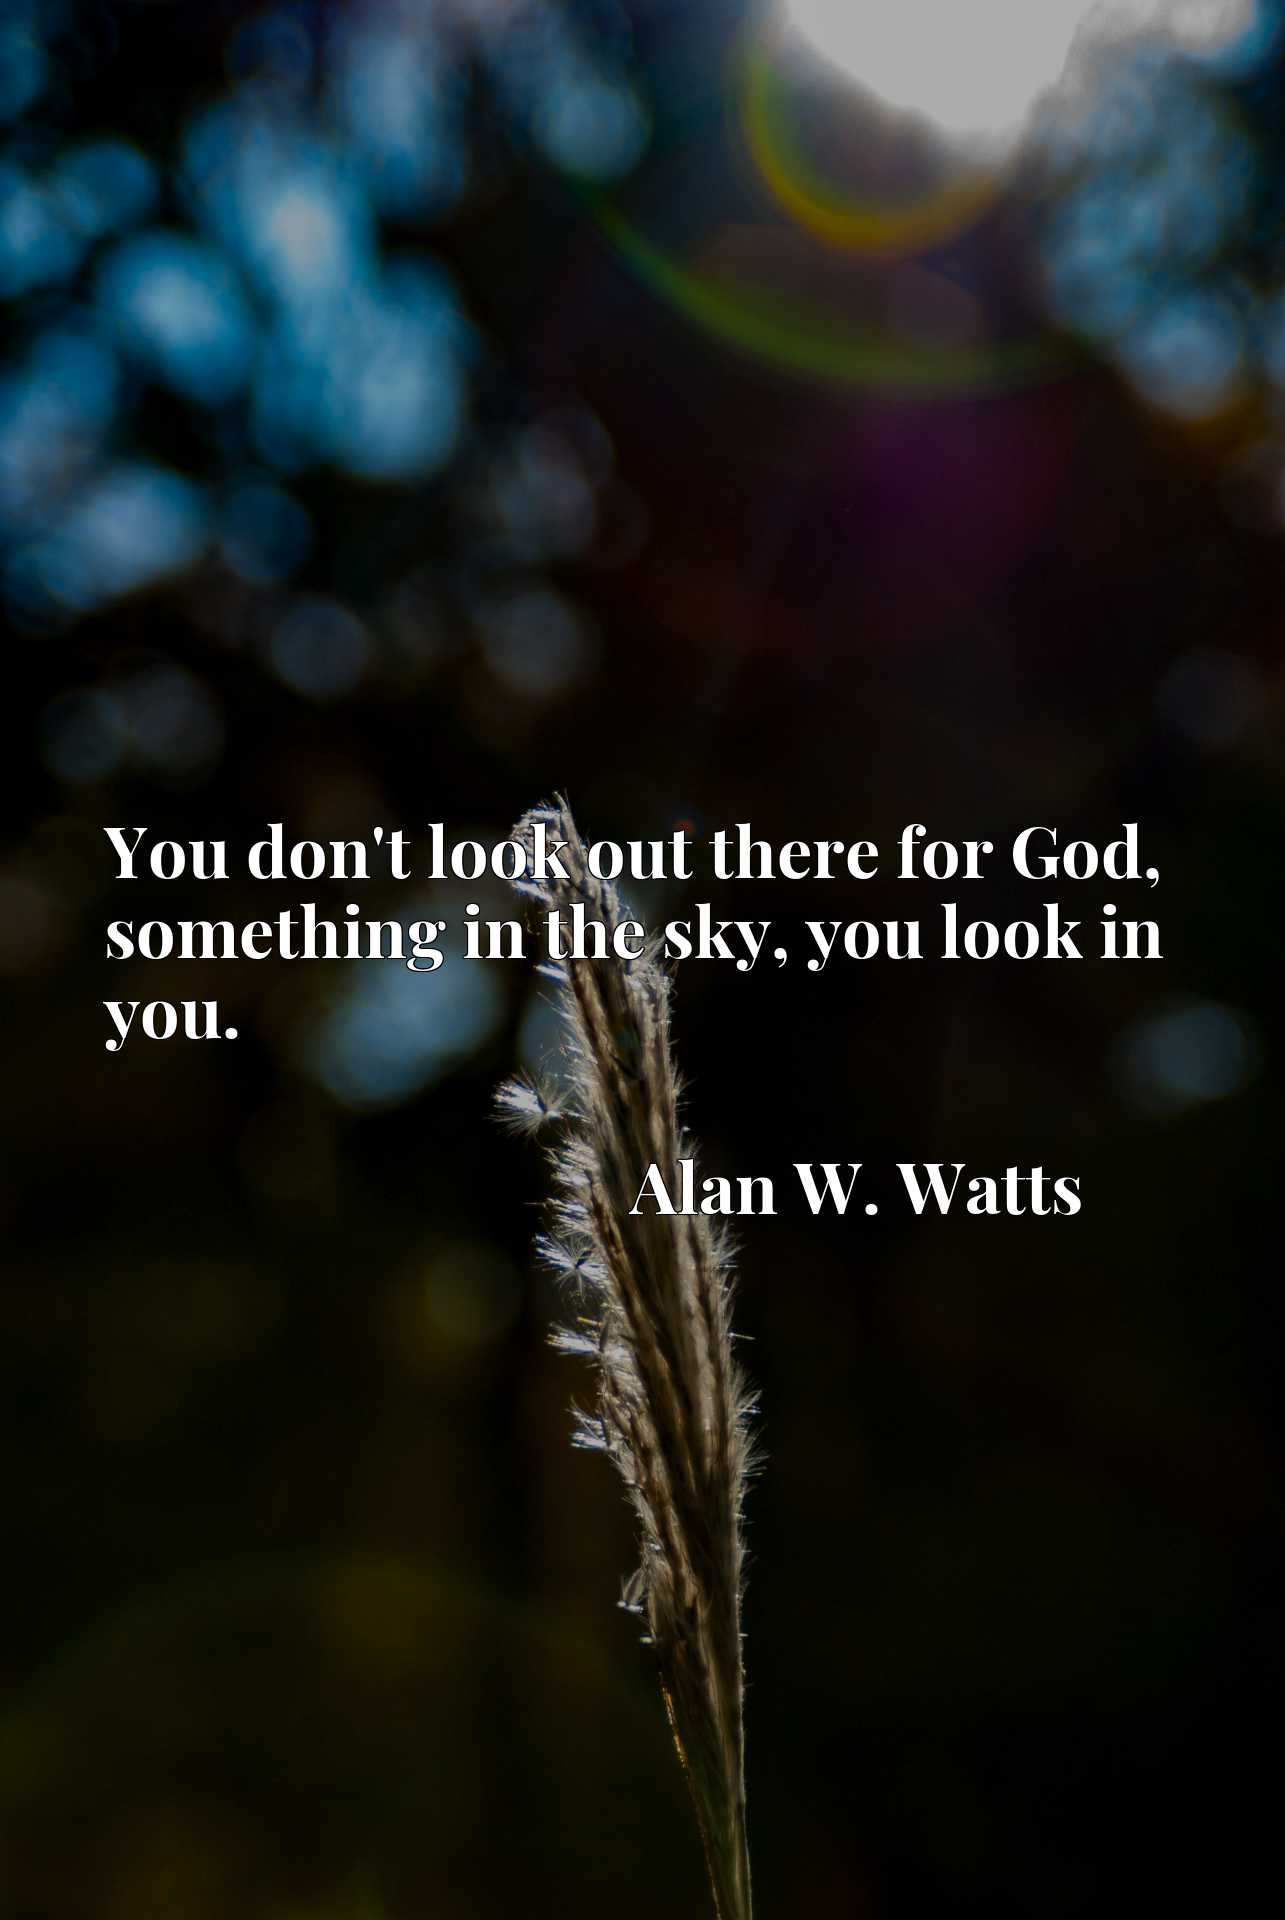 Quote Picture :You don't look out there for God, something in the sky, you look in you.